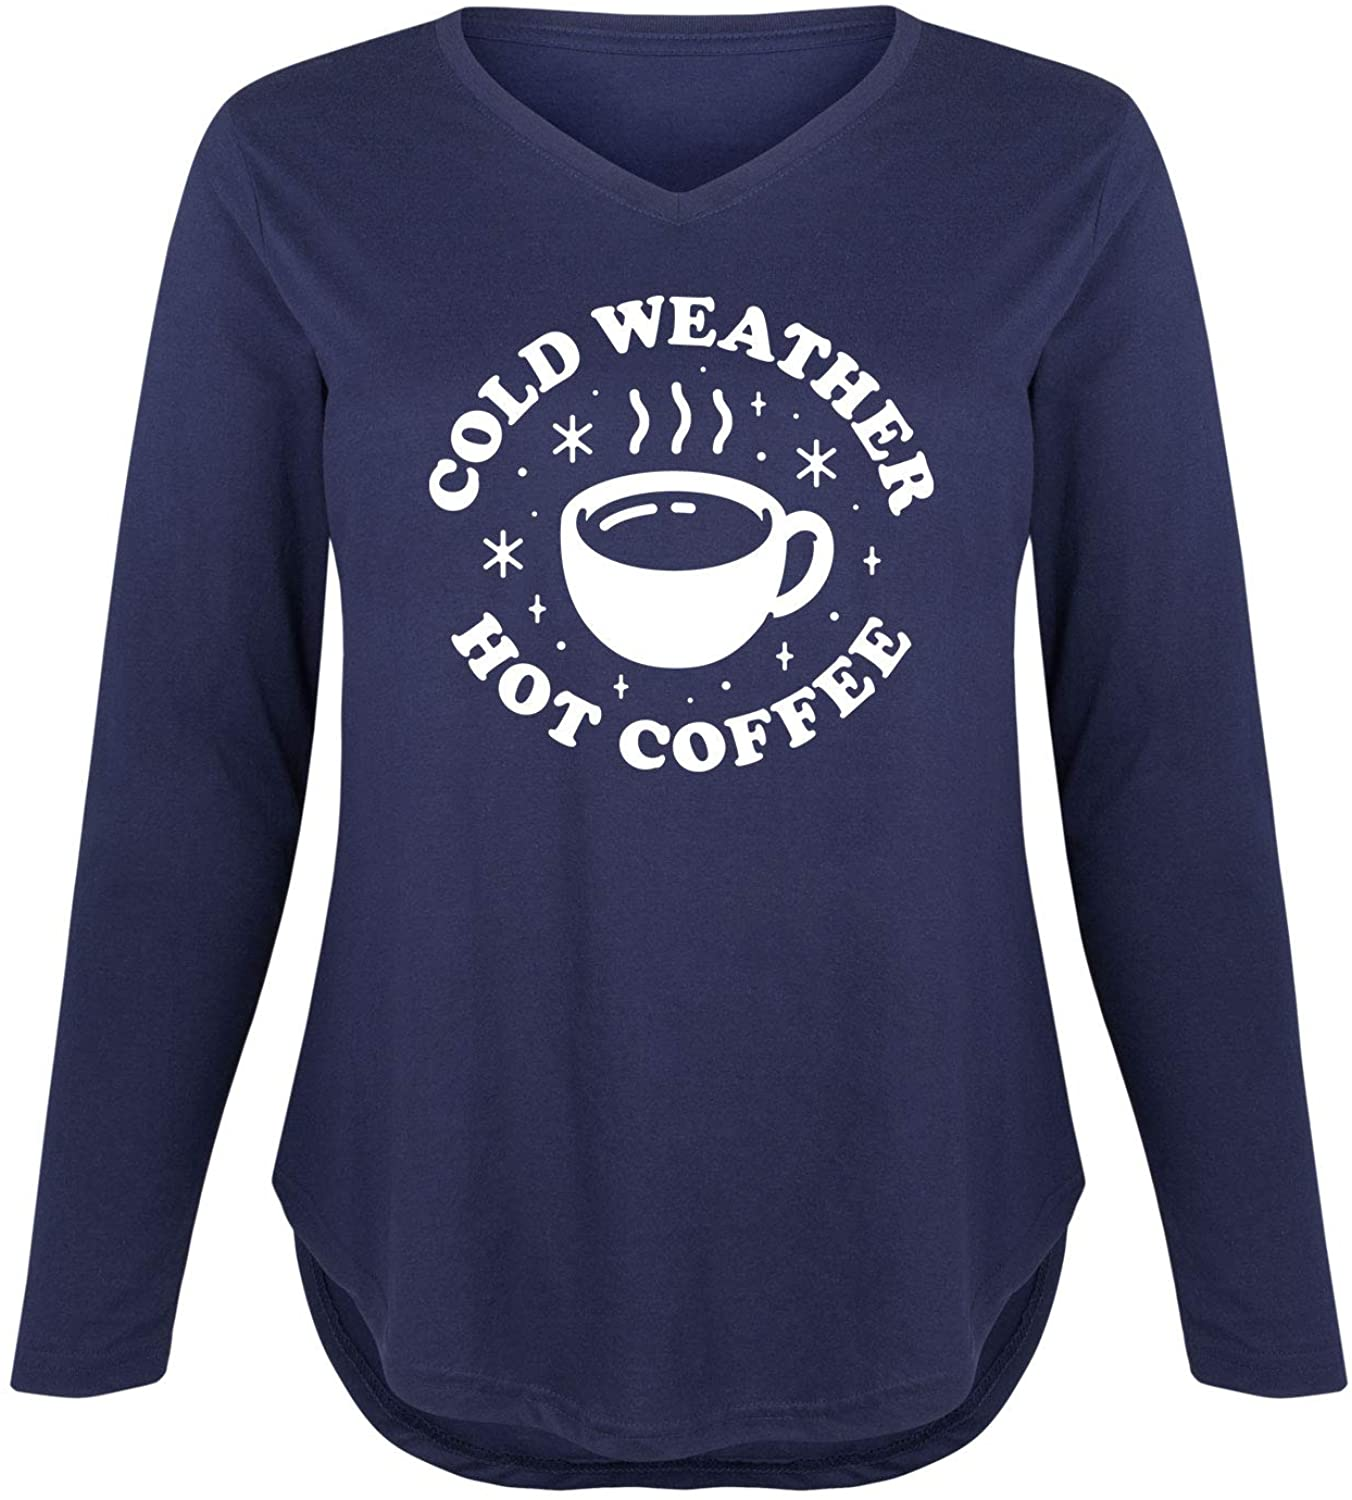 Cold Weather Hot Coffee - Ladies Plus V-Neck Long Sleeve Tee